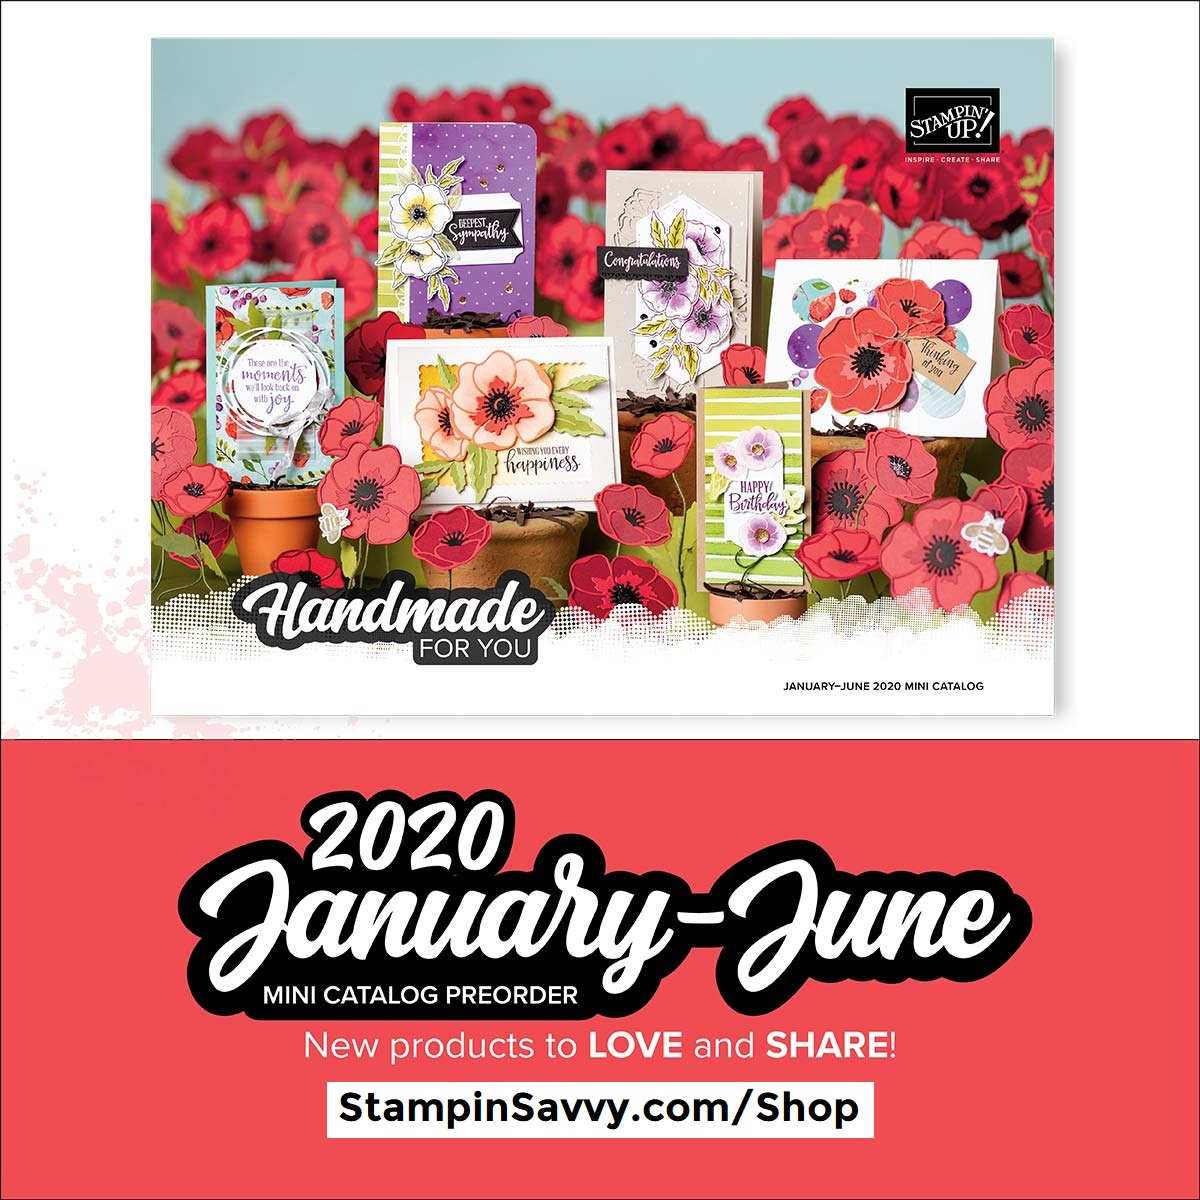 2020 Stampin' Up! January-June Mini Catalog